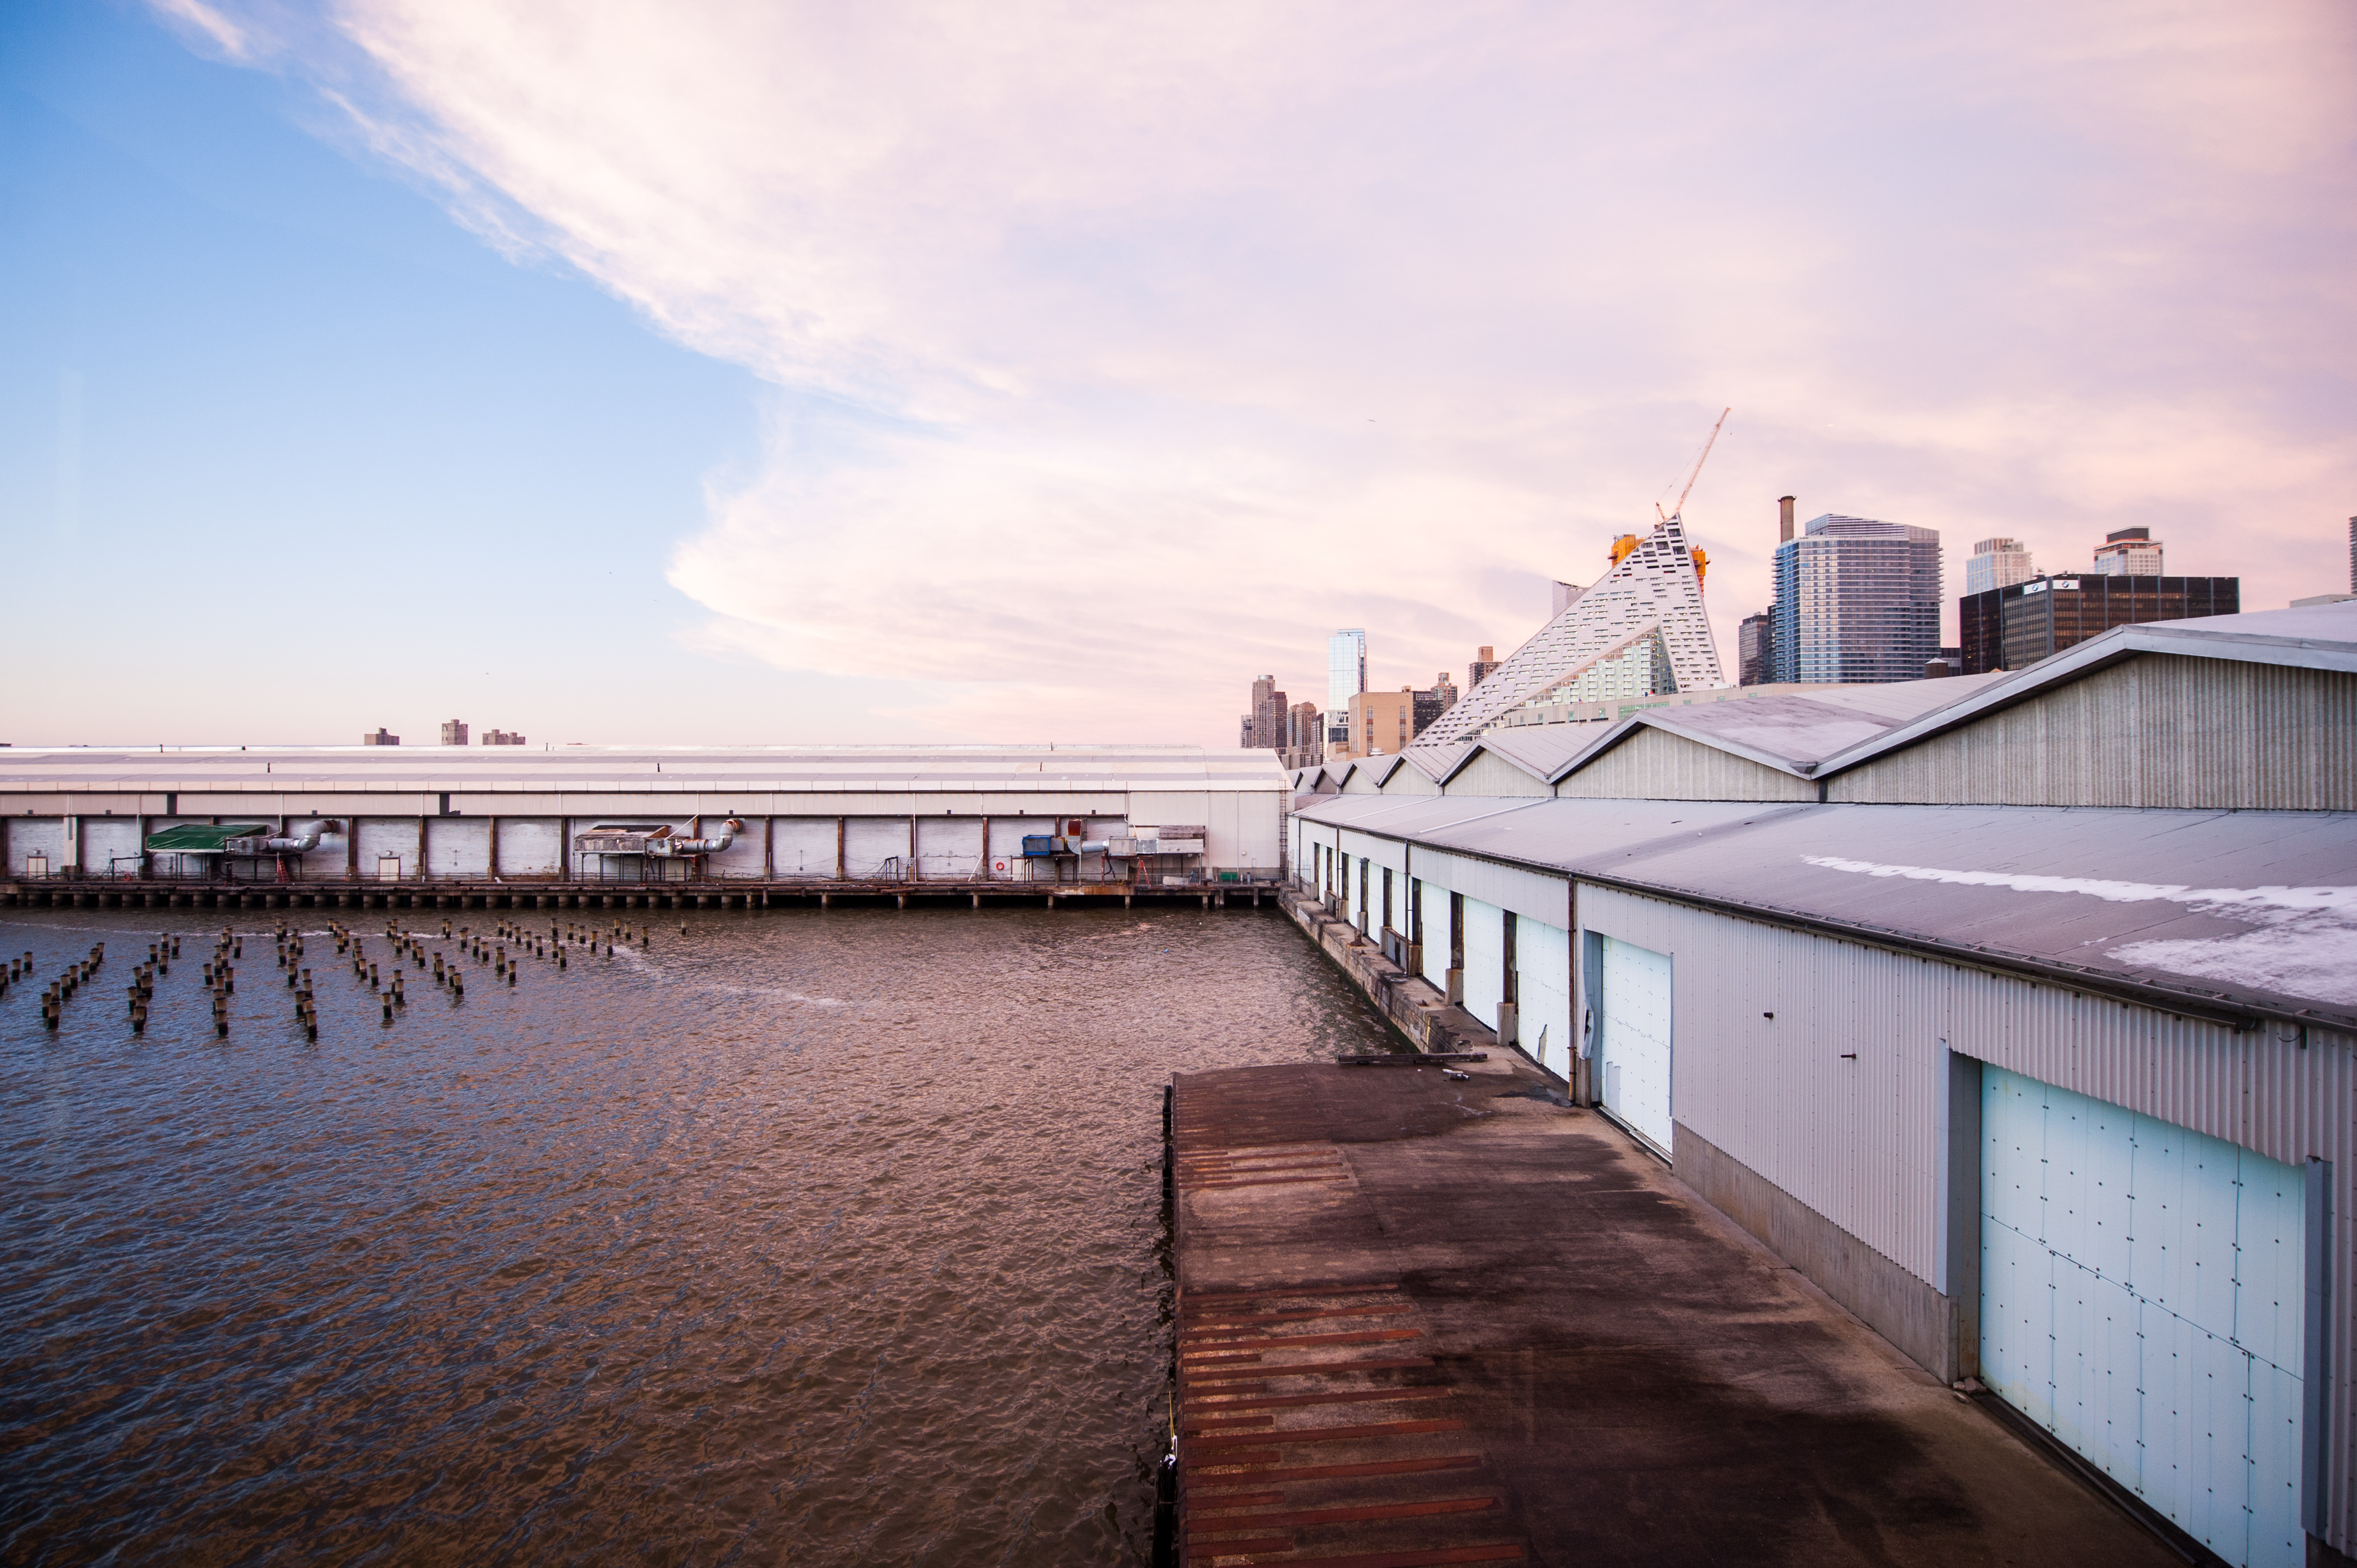 Piers 92 and 94. Photograph by Teddy Wolff. Courtesy of The Armory Show